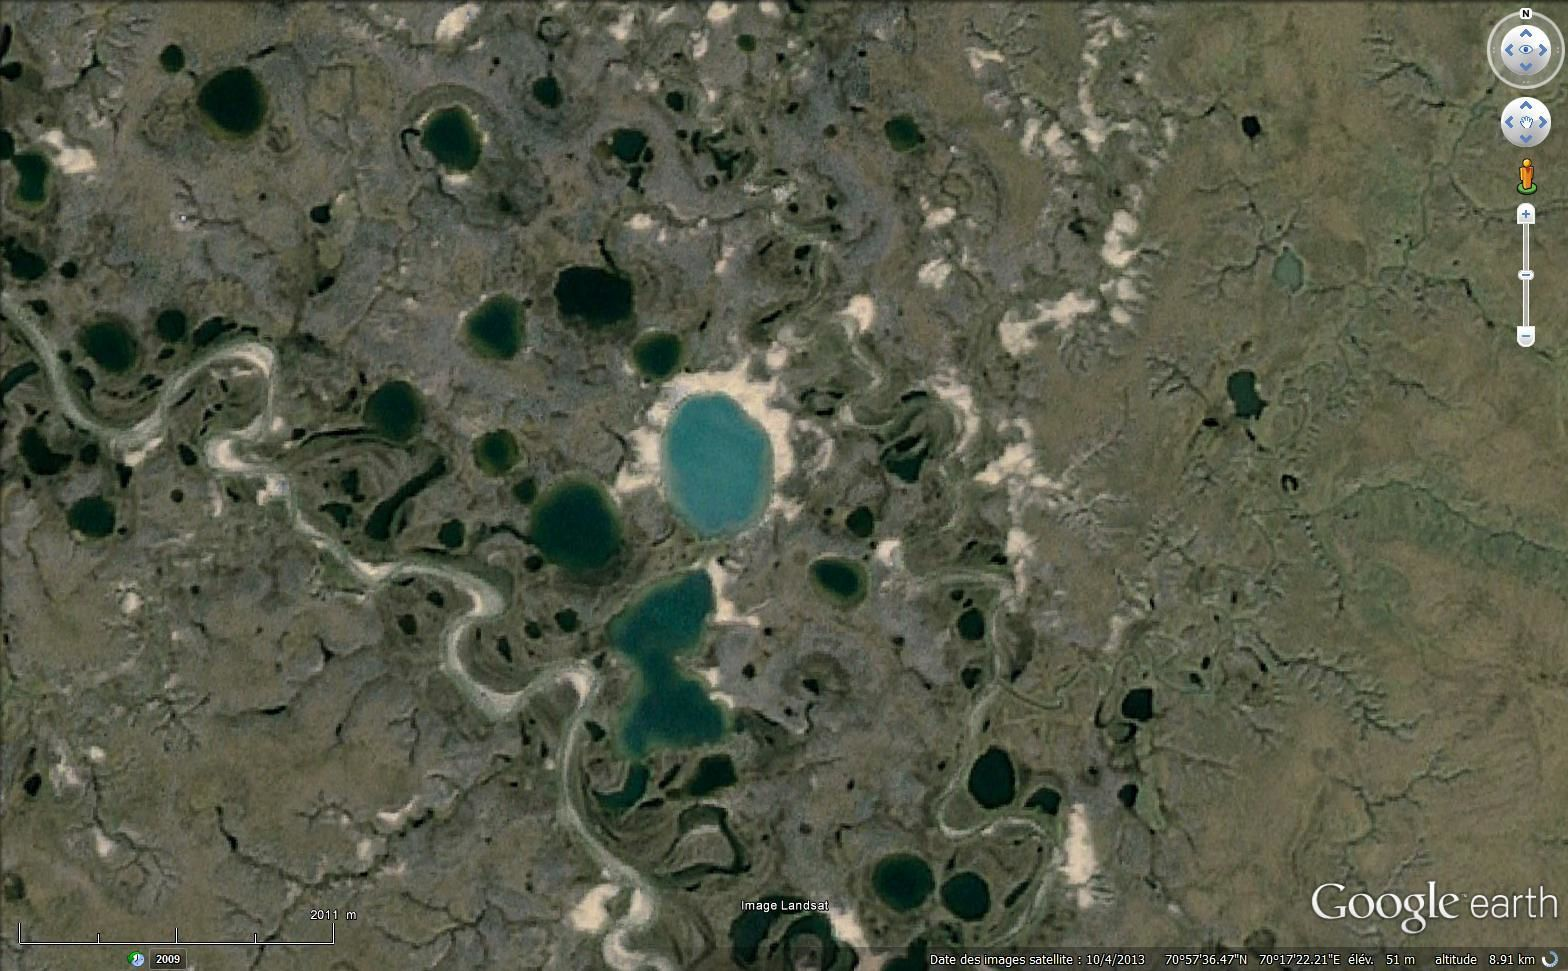 La péninsule de Yamal sur Google earth